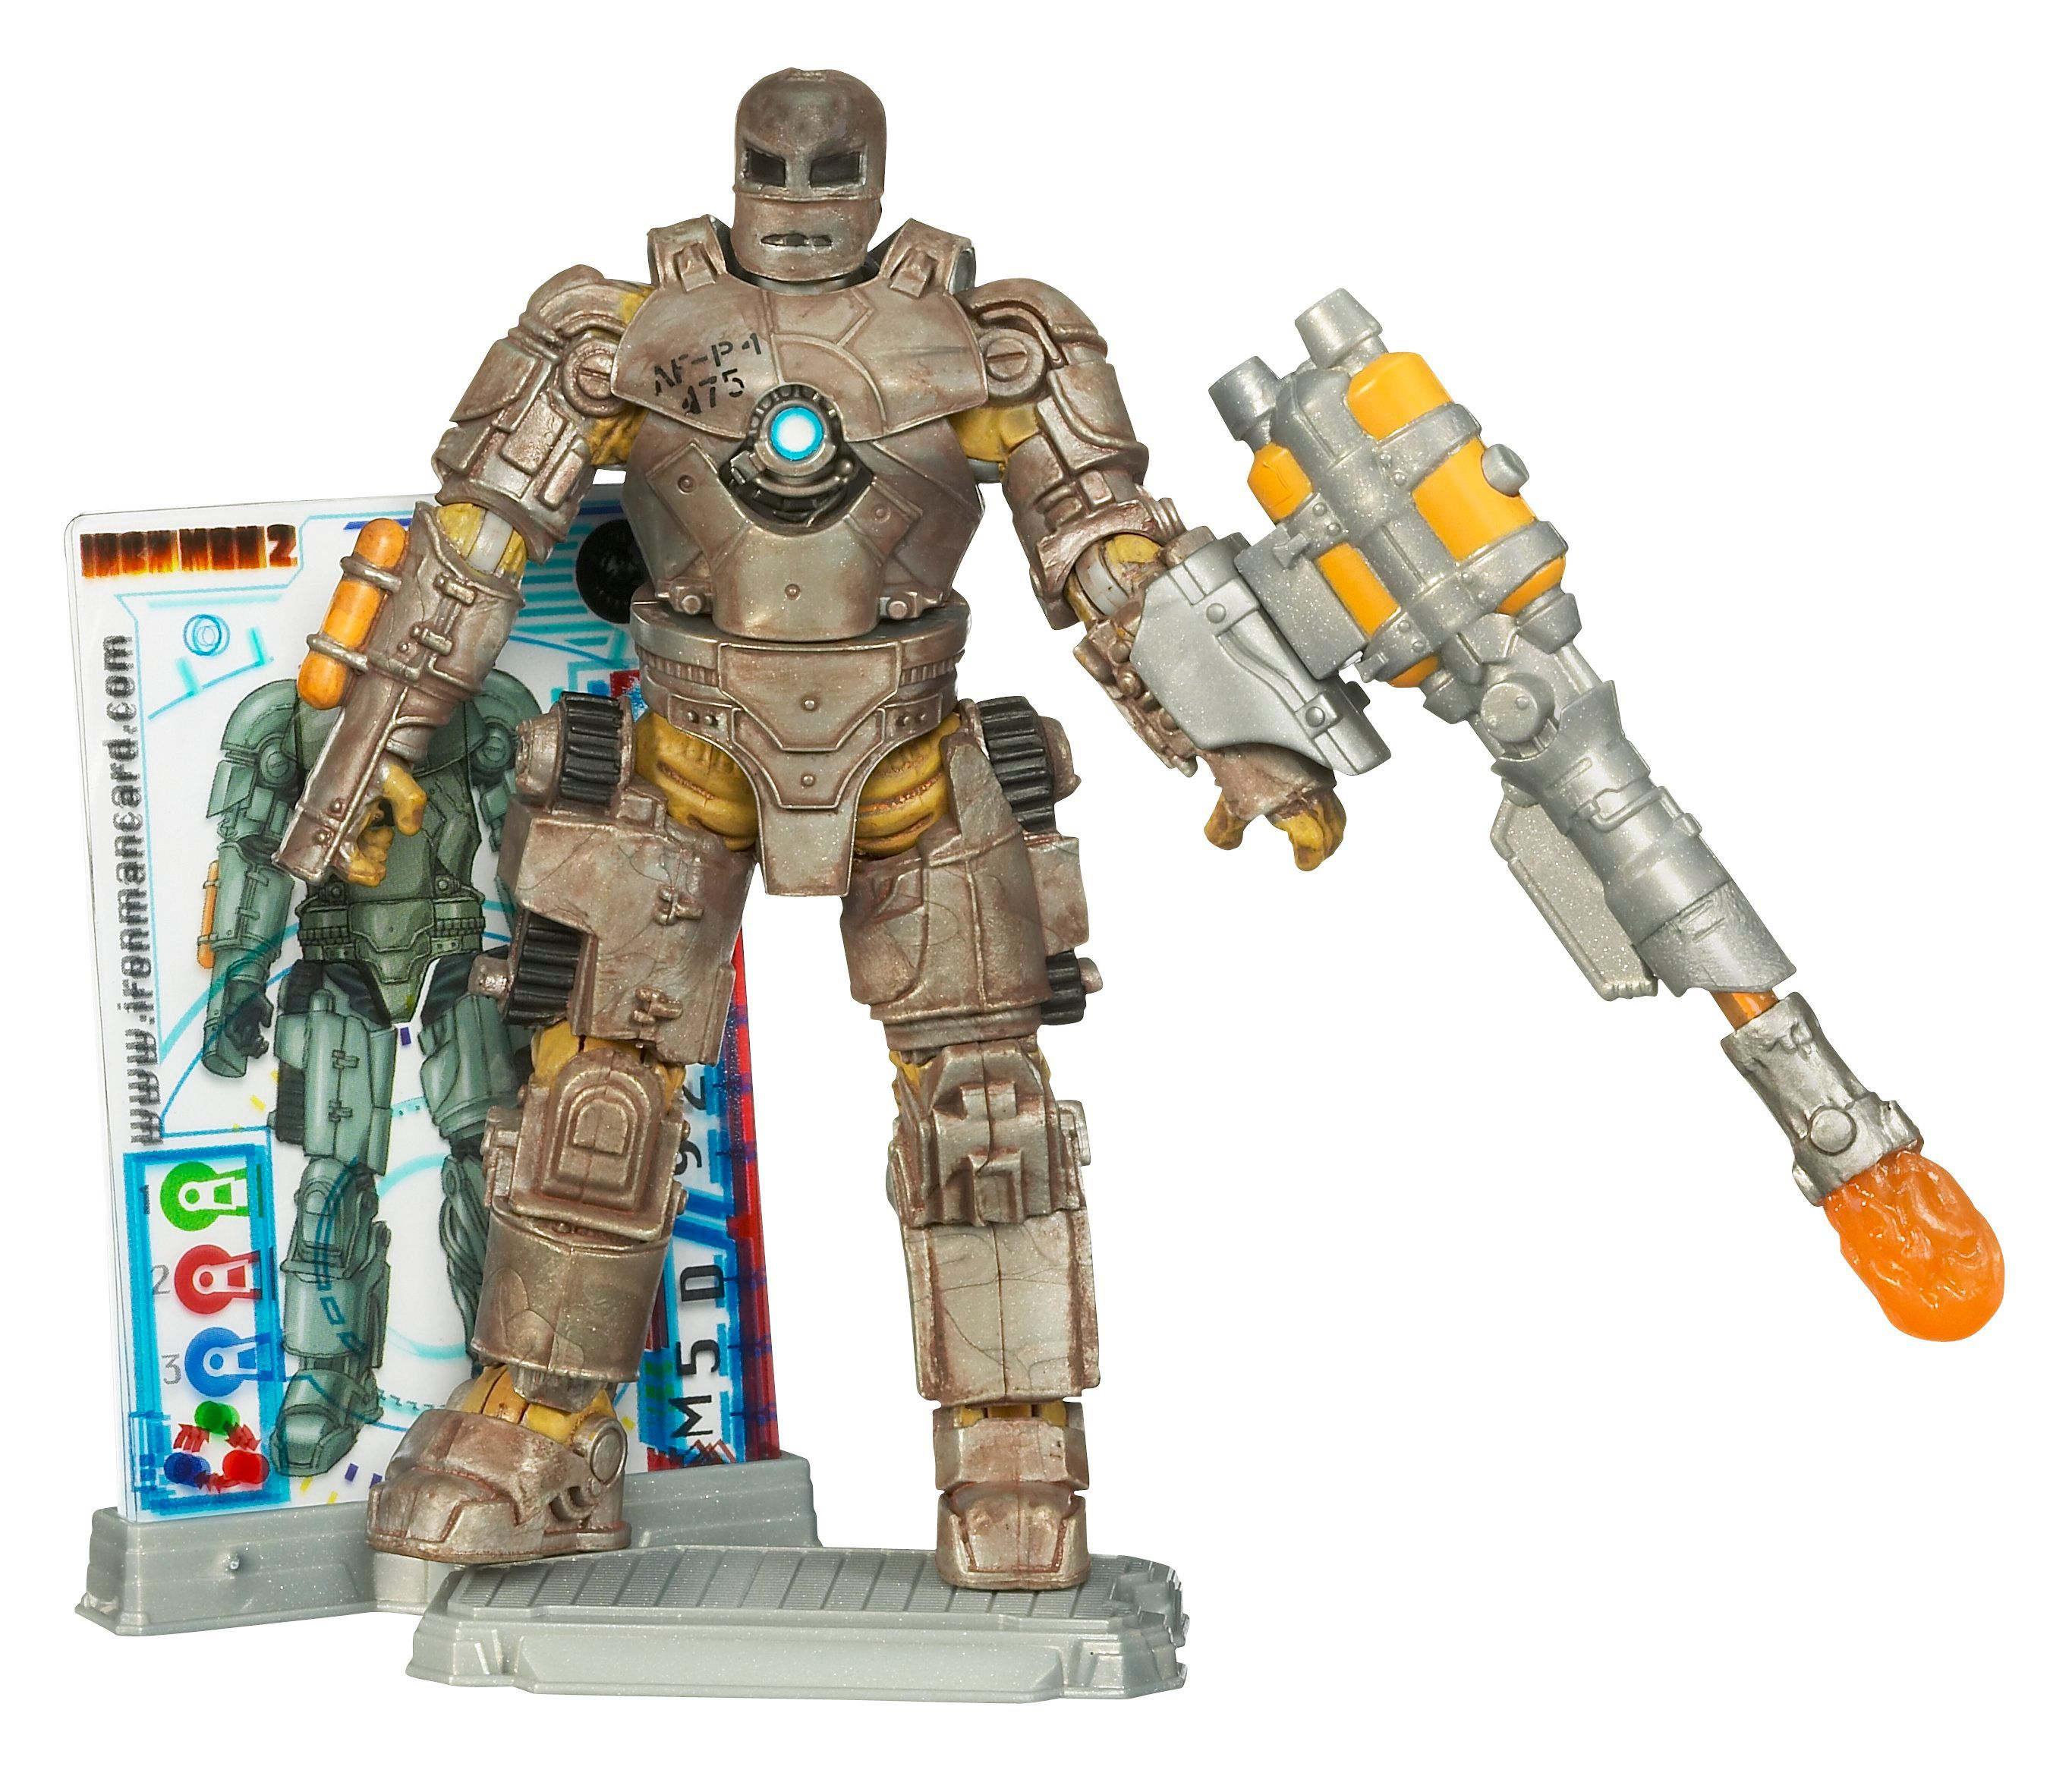 Men S Toys : All the new iron man toys in high resolution including